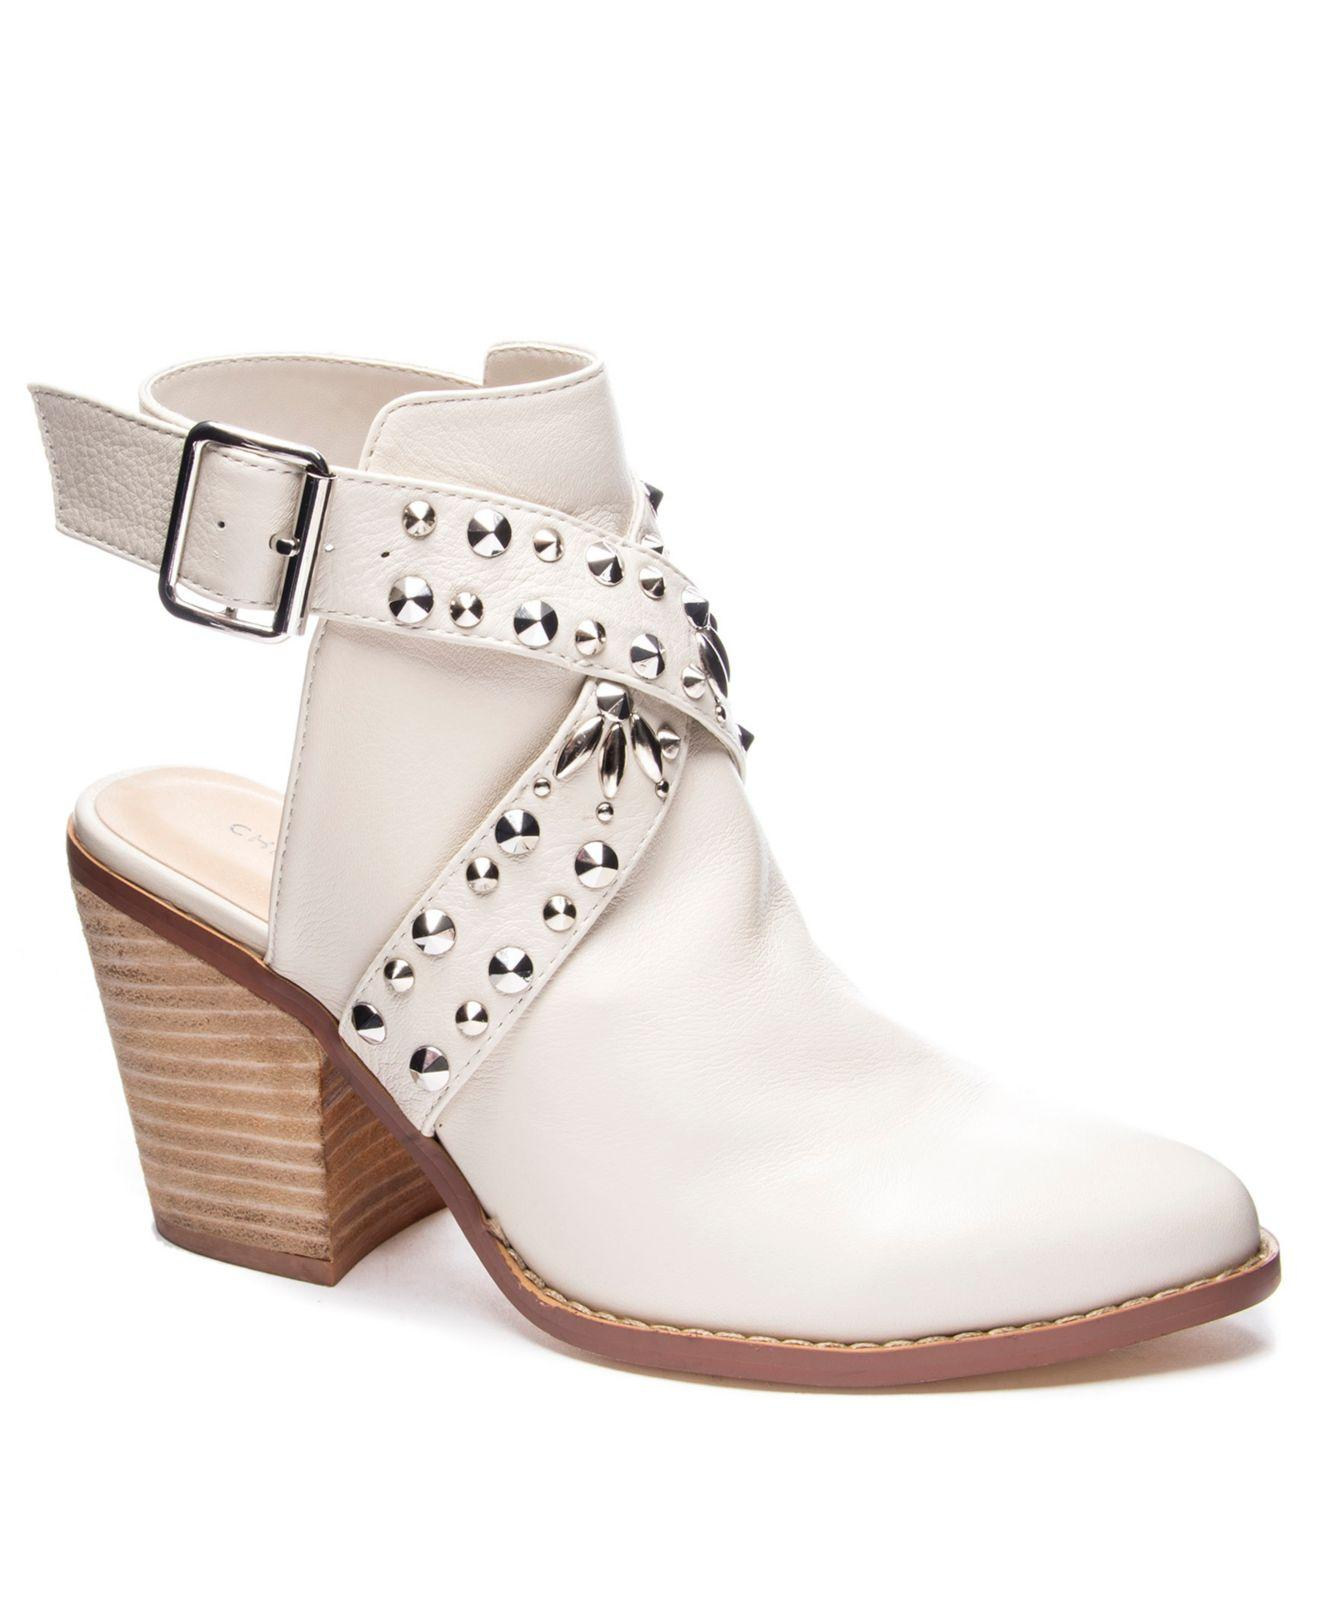 872ca9877 Chinese Laundry Small Town Studded Mules in White - Save 30% - Lyst